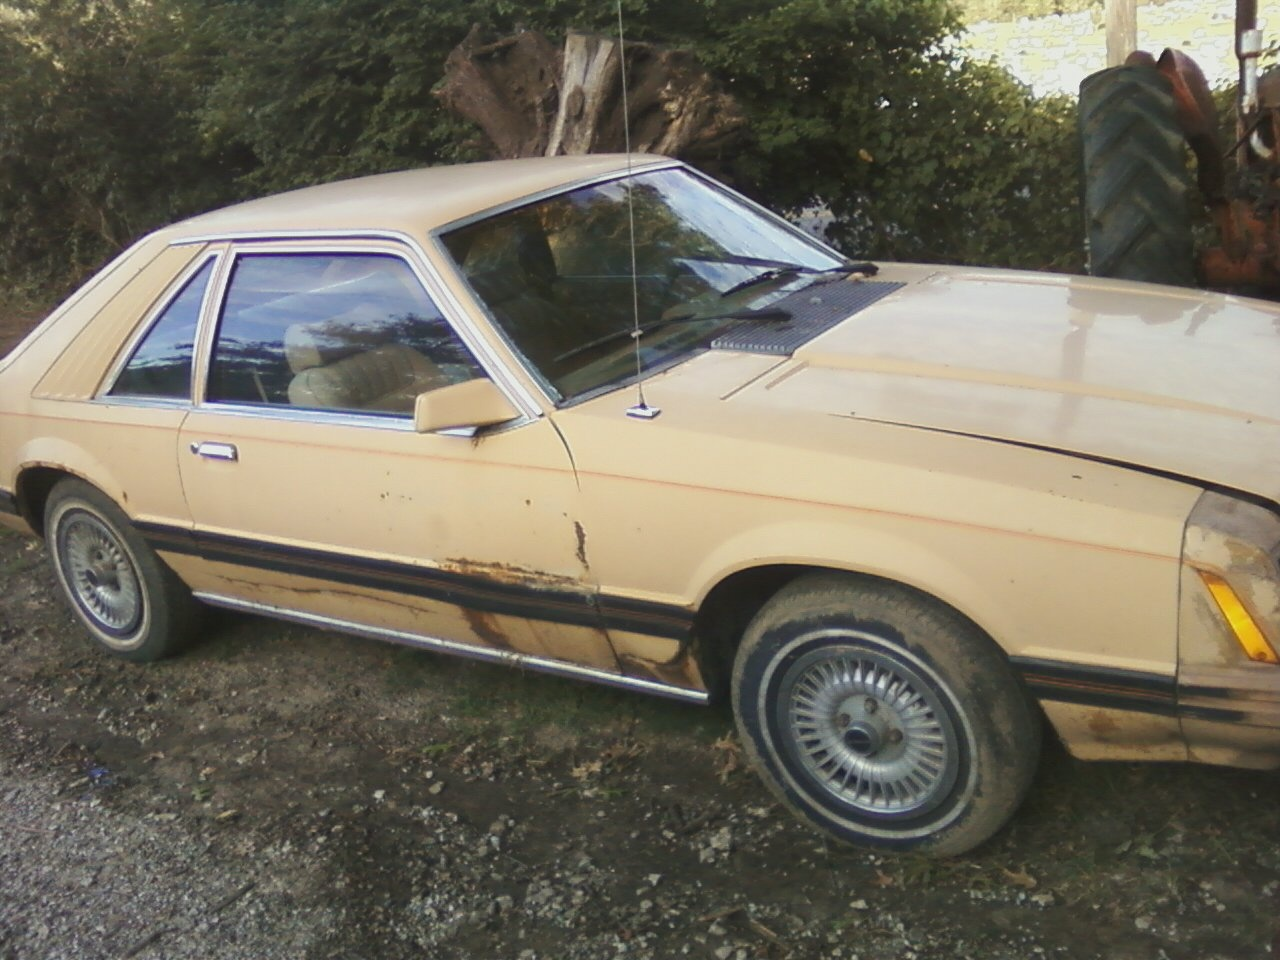 Ford Mustang Questions  Trying to value a 1979 Mustang Ghia Help